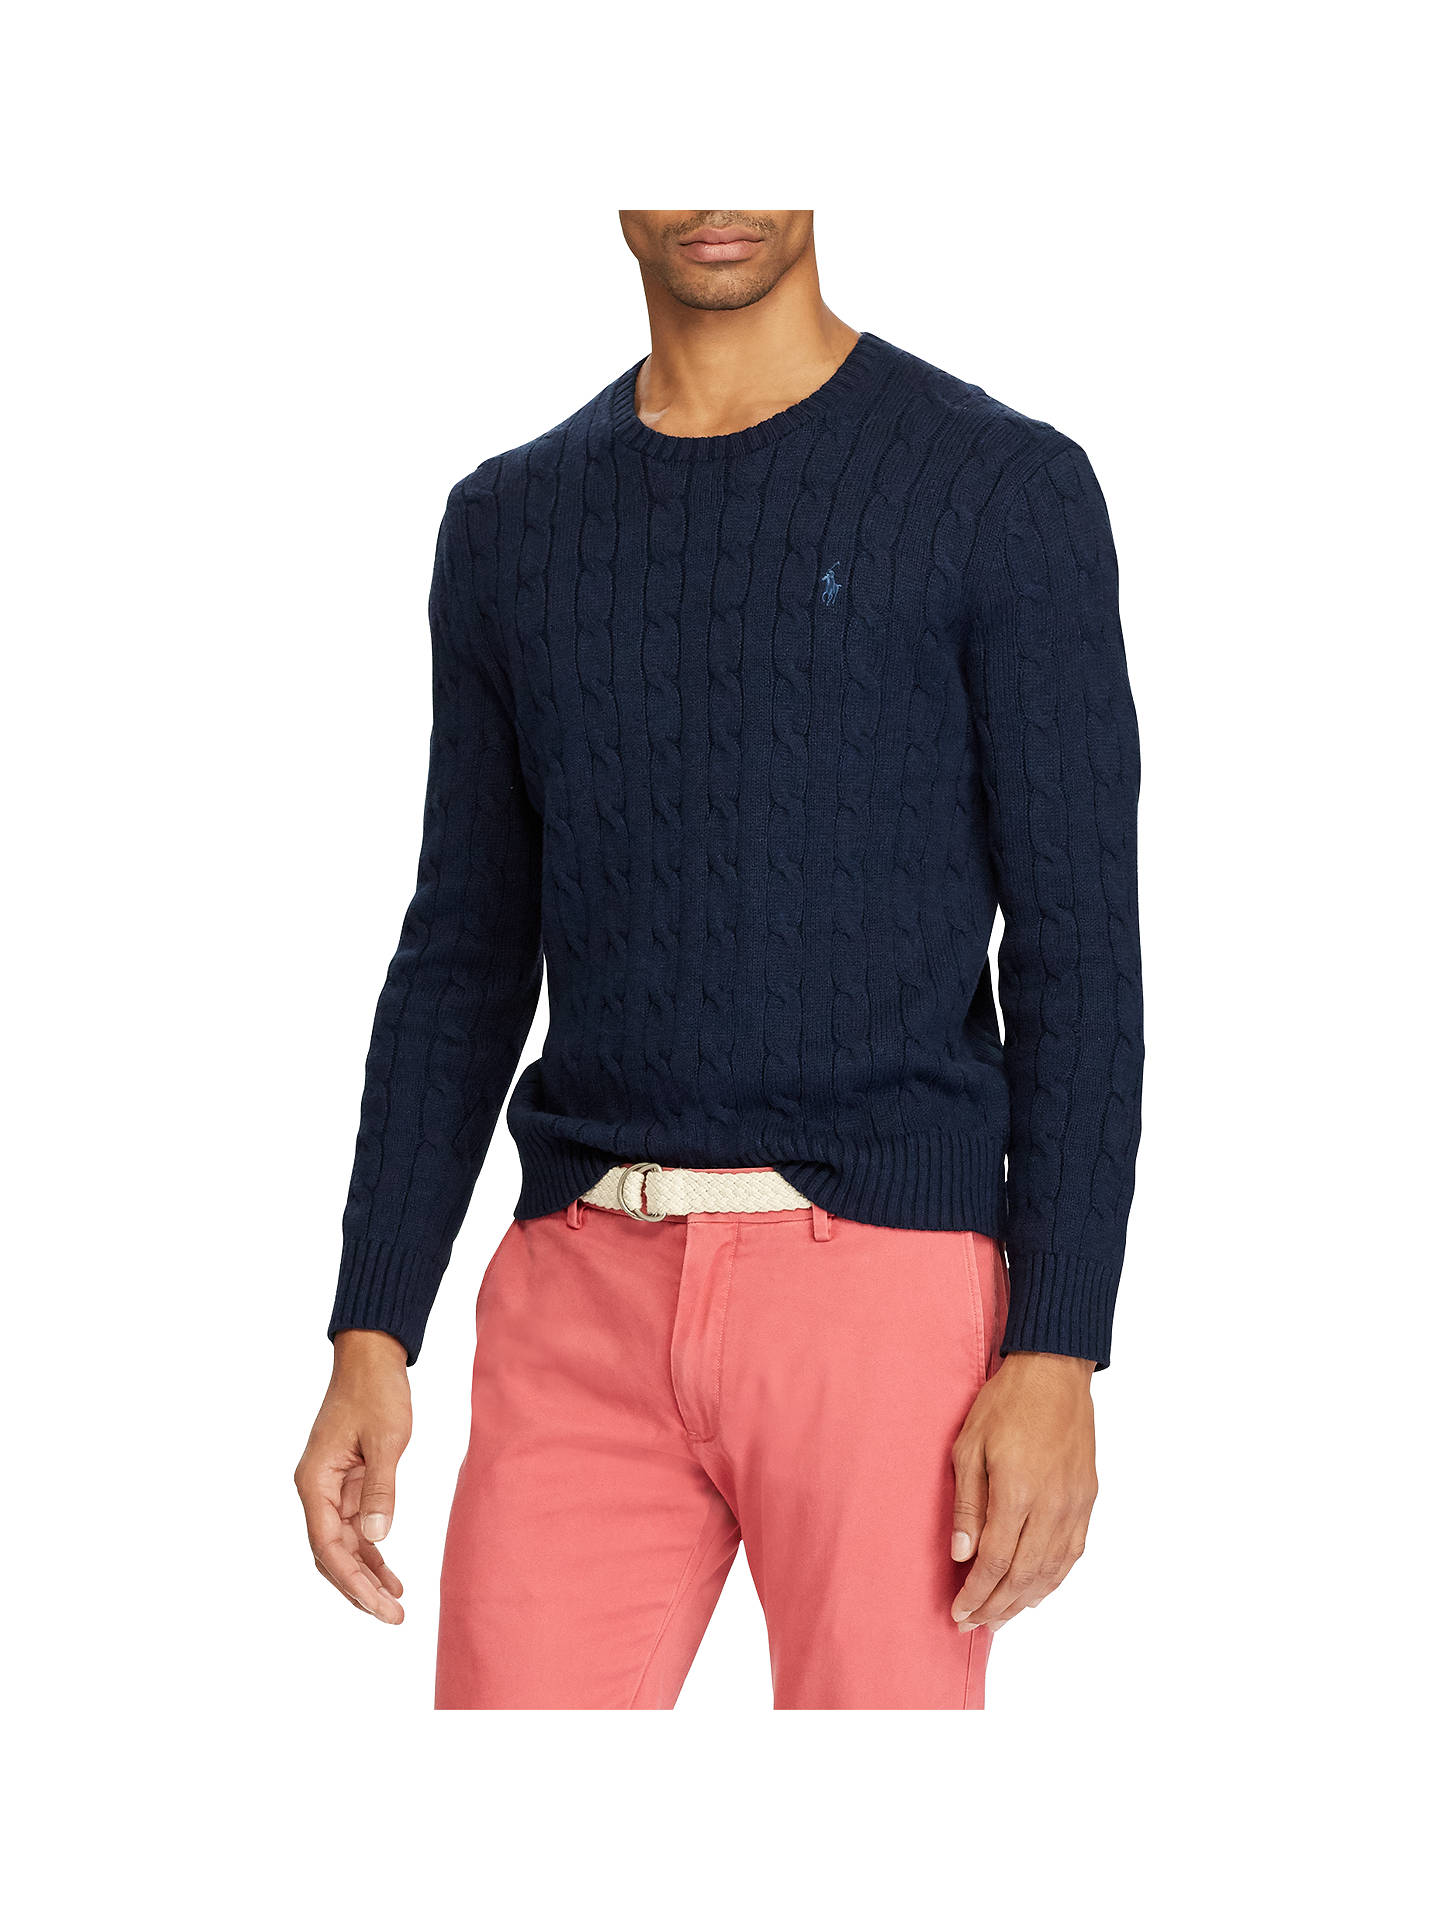 eae2ea25c168 Polo Ralph Lauren Cable-Knit Cotton Jumper at John Lewis   Partners